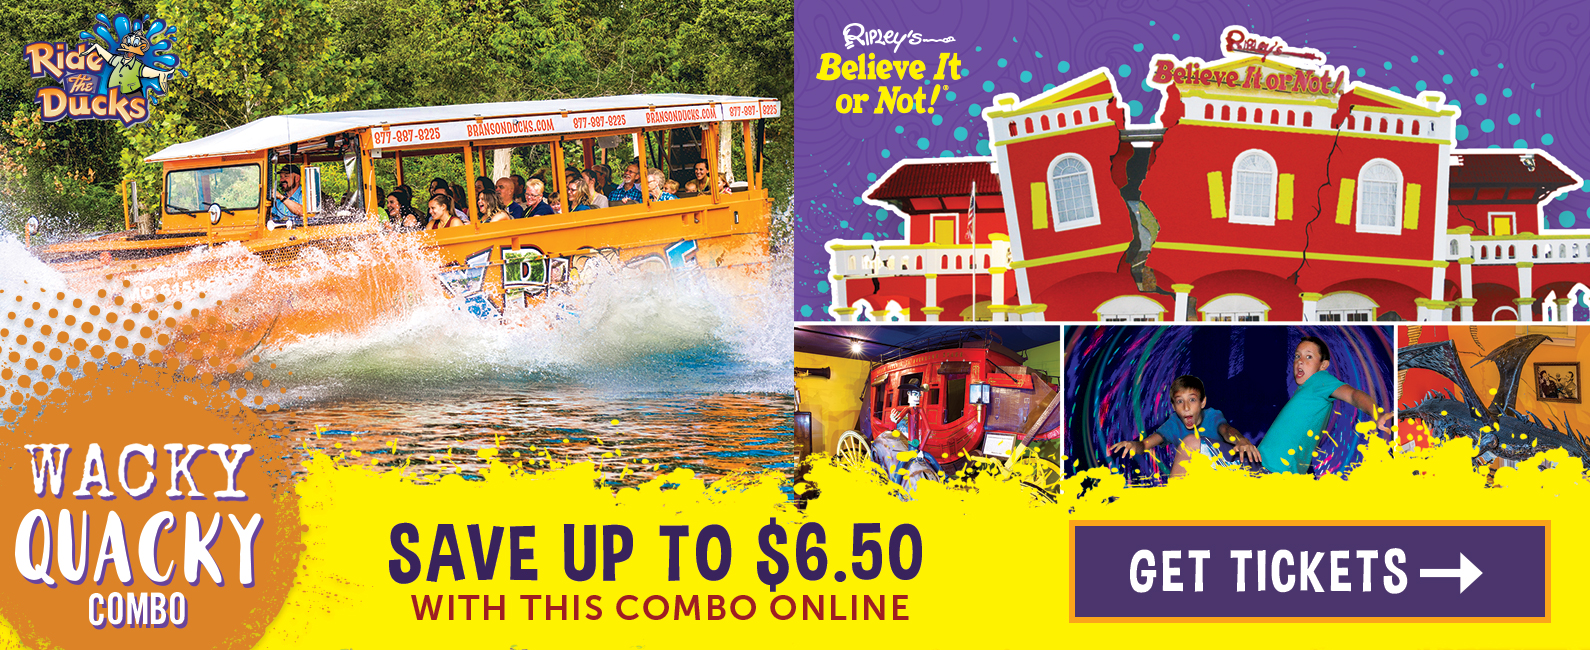 $6.50 off adult tickets